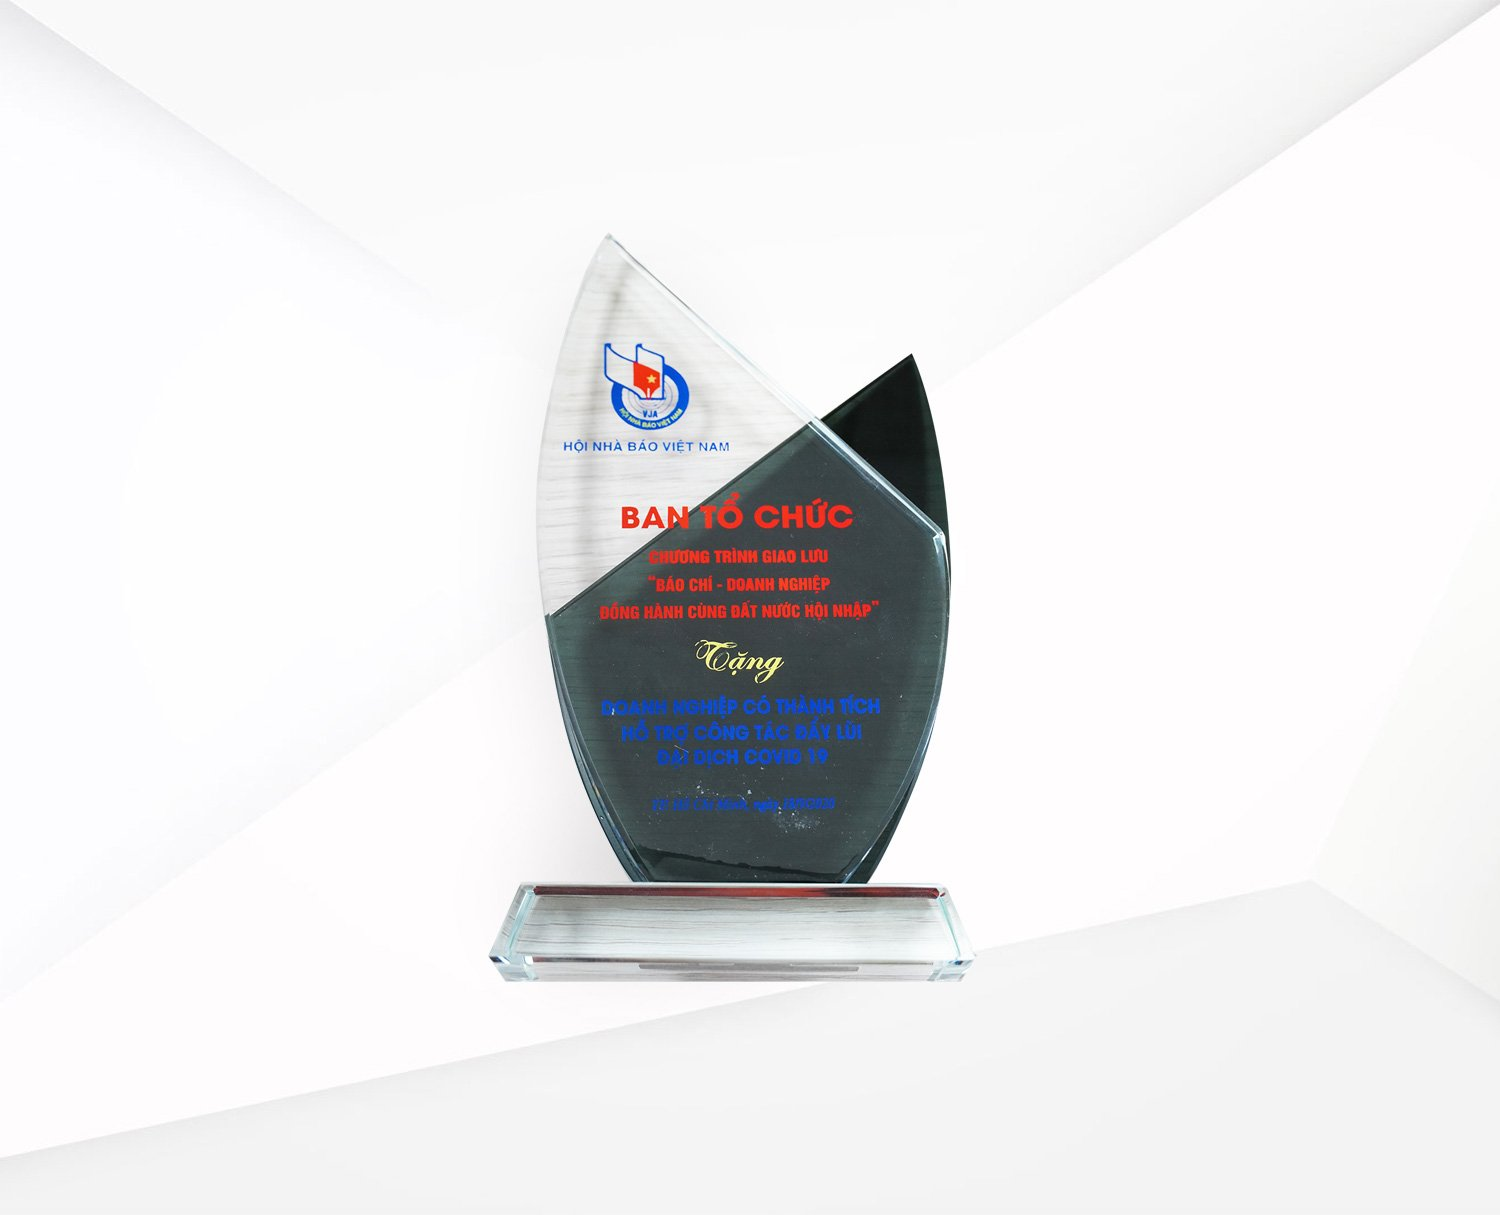 Recognition of efforts in supporting the battle against Covid-19